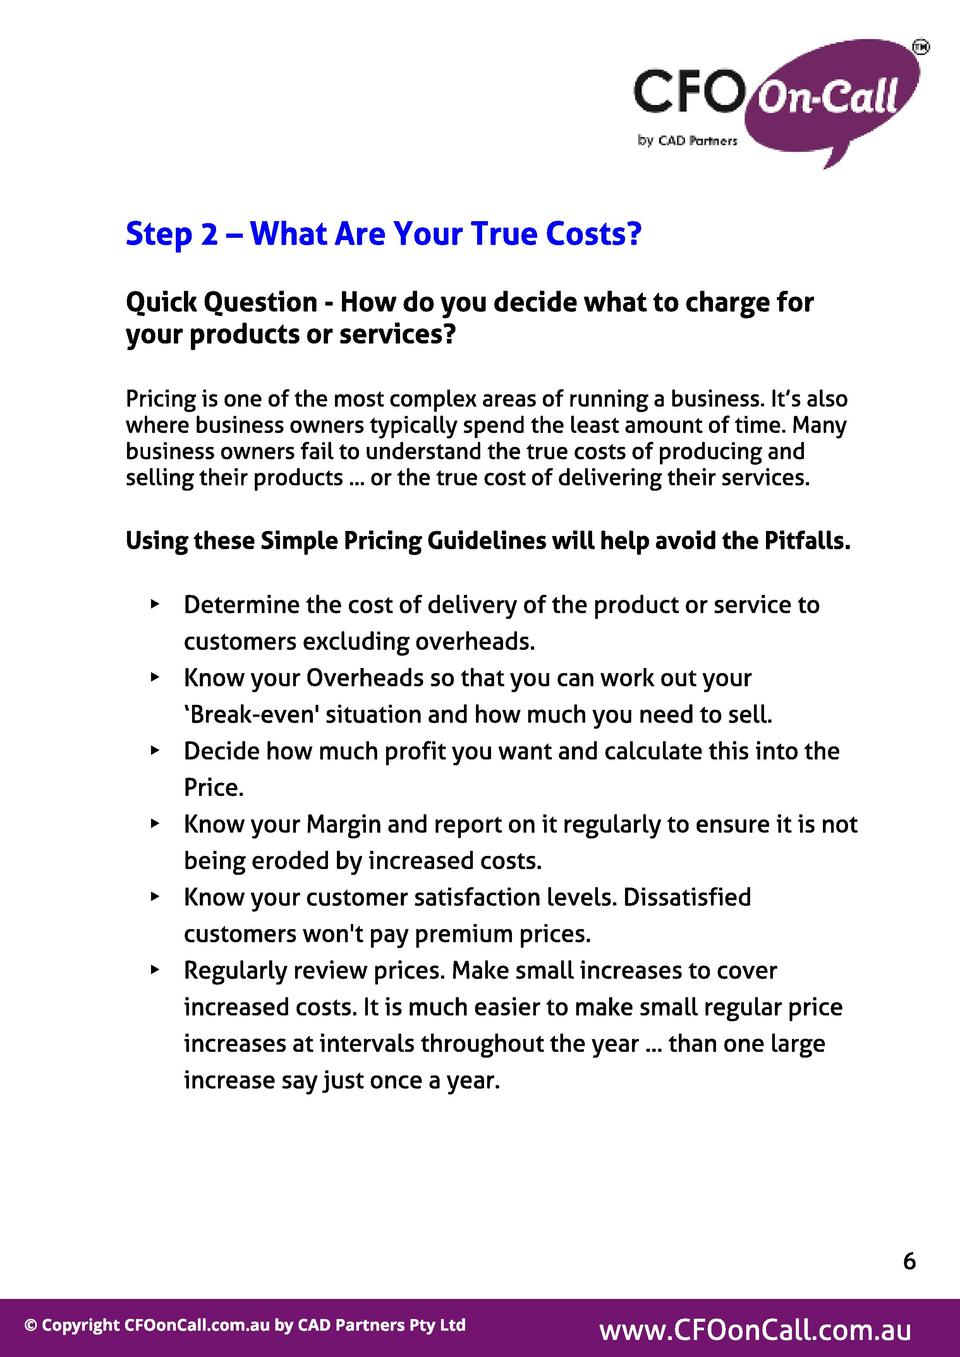 St ep 2   What Are Your True Cost s  Quick Quest ion - How do you decide what t o charge f or your product s or services  ...